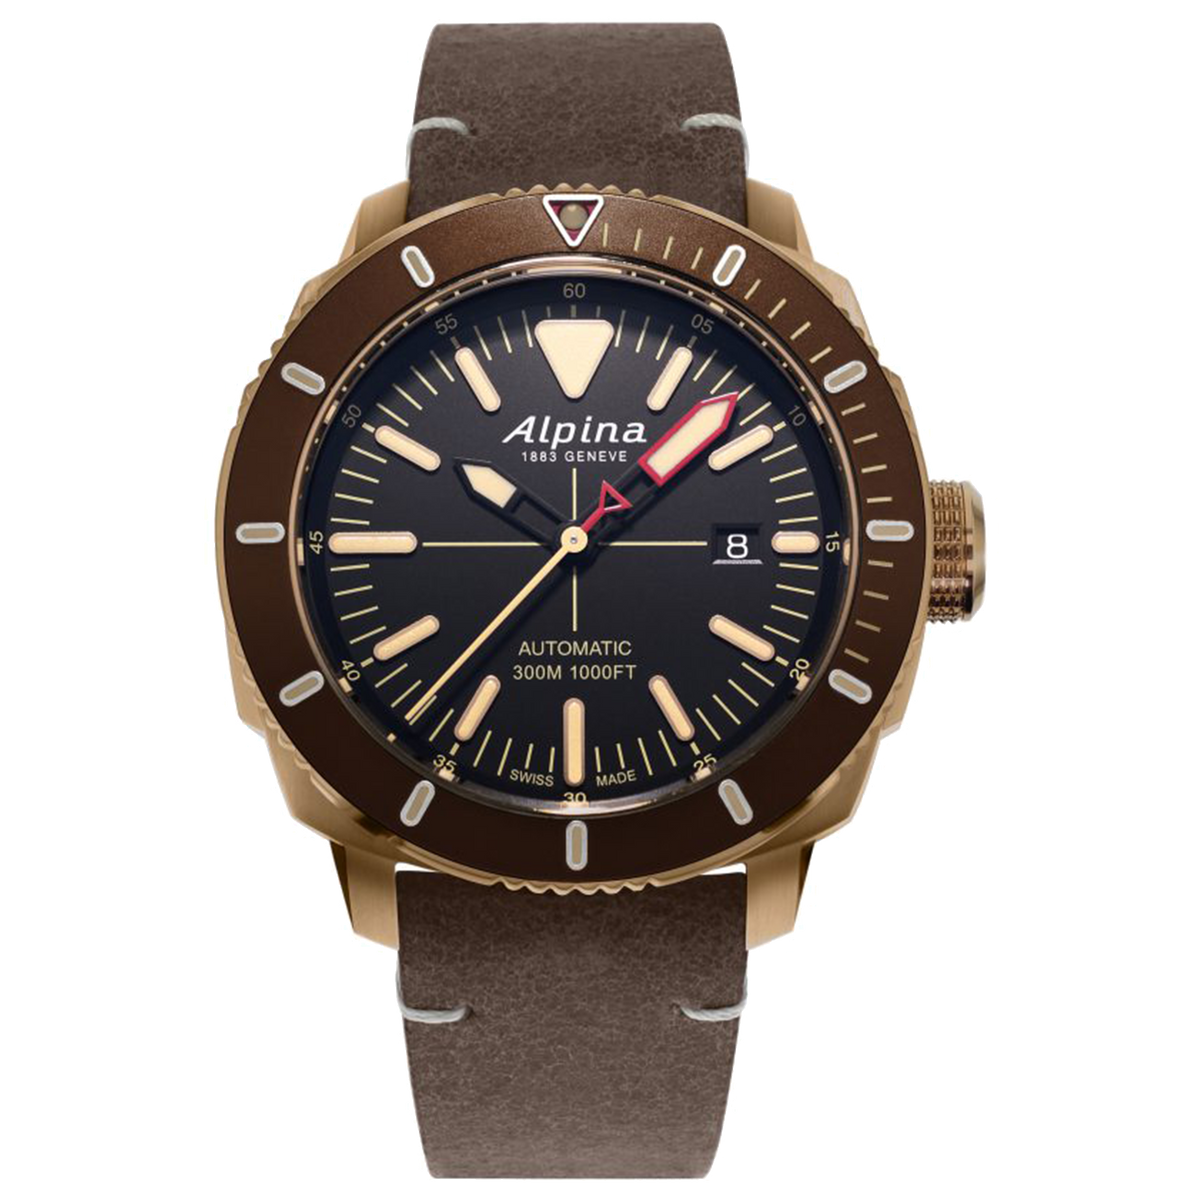 Alpina - SEASTRONG DIVER 300 AUTOMATIC - Bronze PVD Case